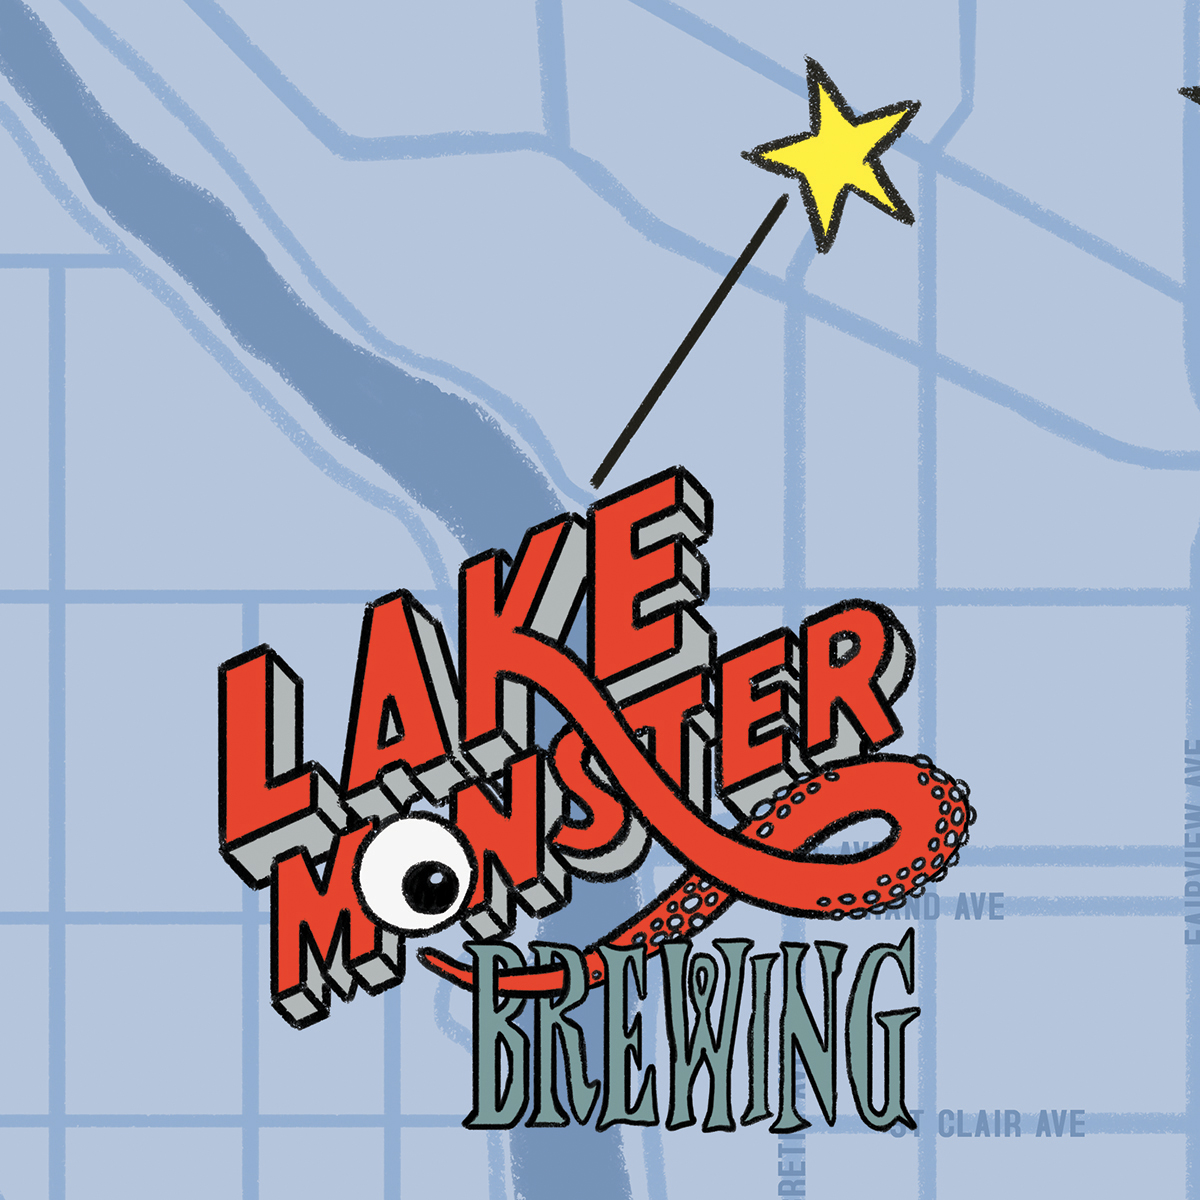 2016-06-06-lakemonster